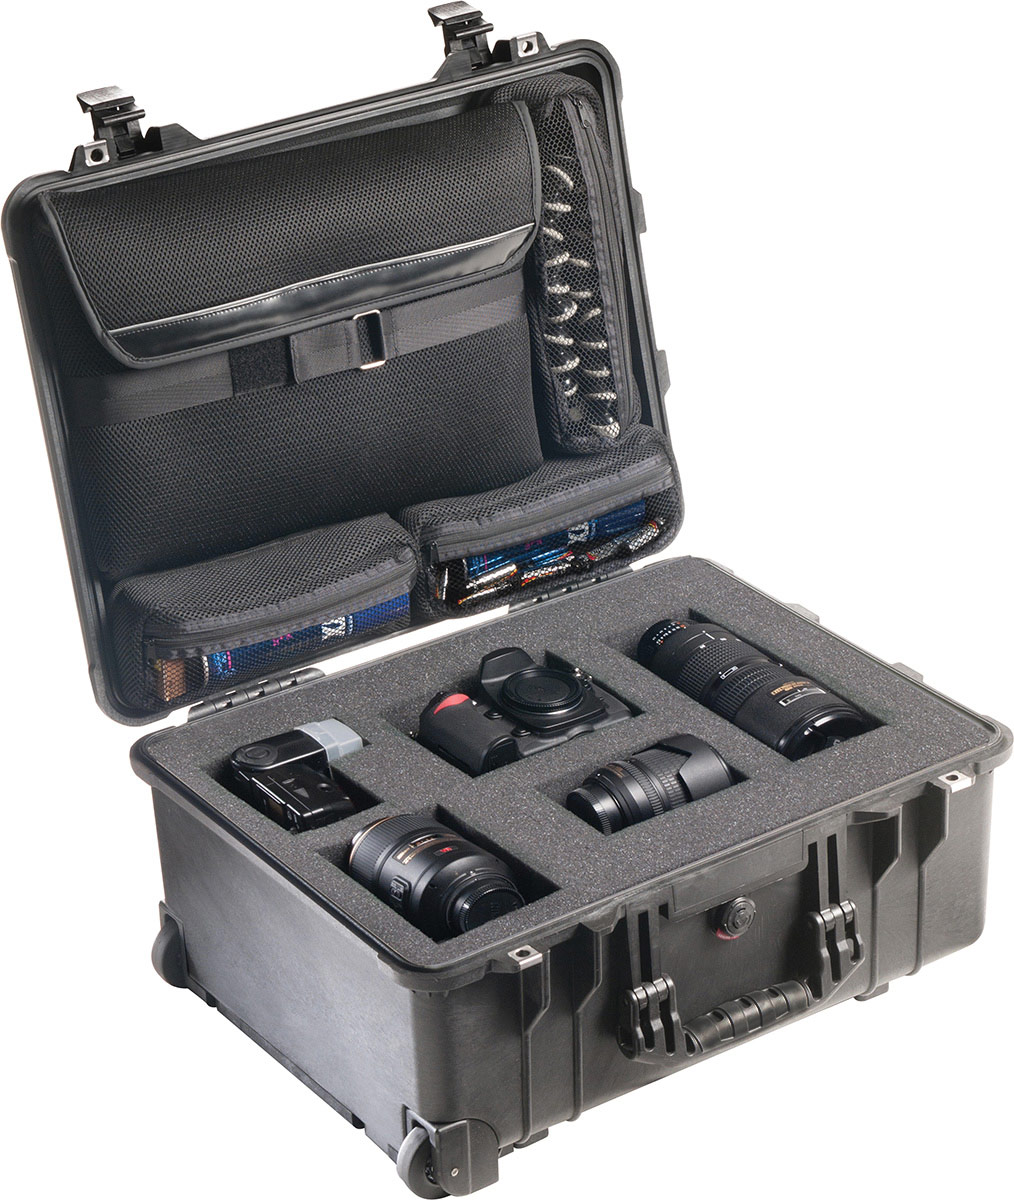 pelican tough rolling protographer hard case